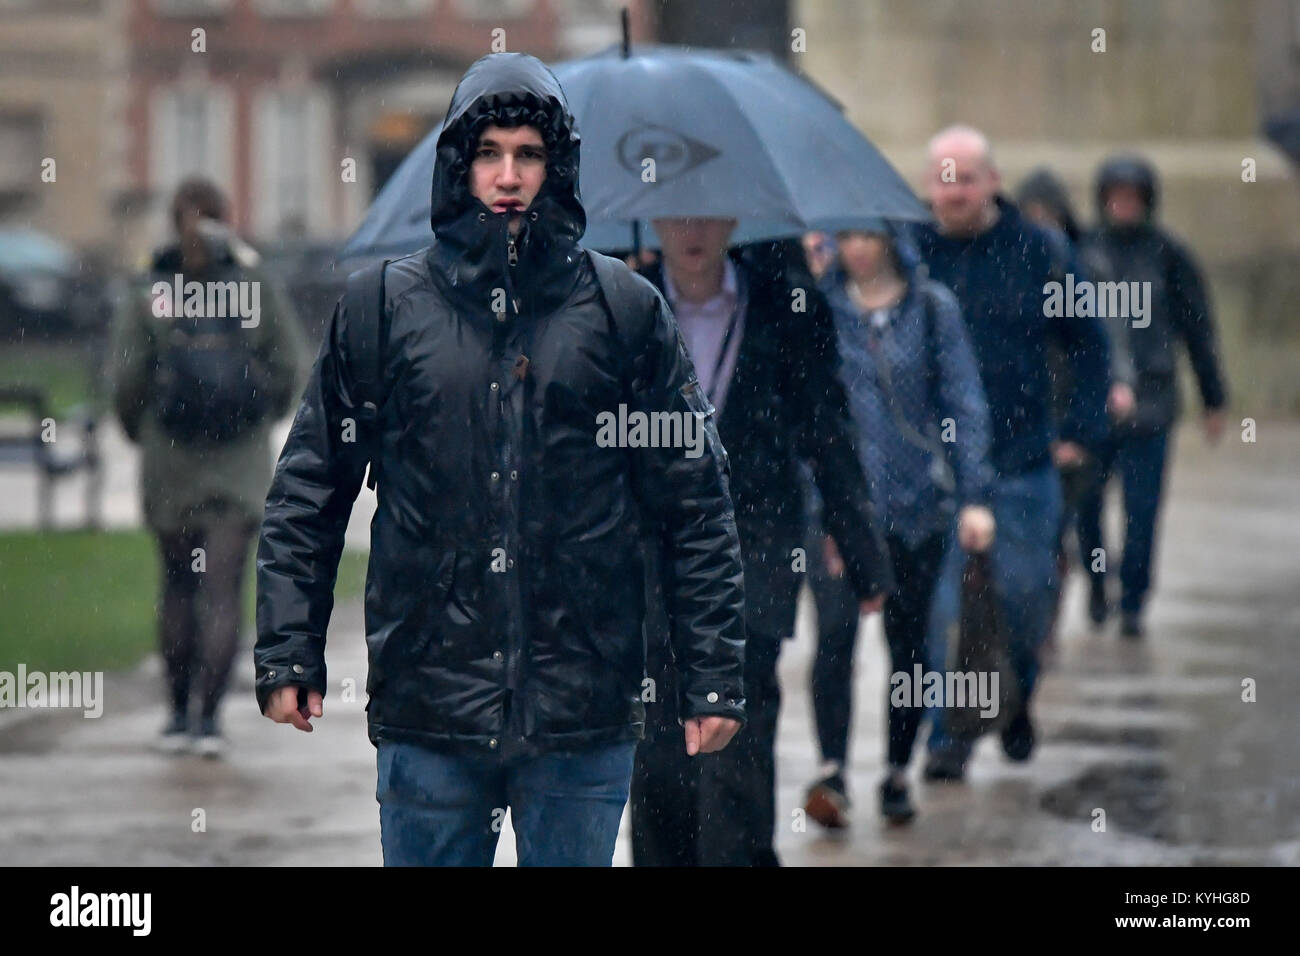 A man walks in pouring rain as people commute to work through Queen's Square in Bristol, on what is claimed - Stock Image